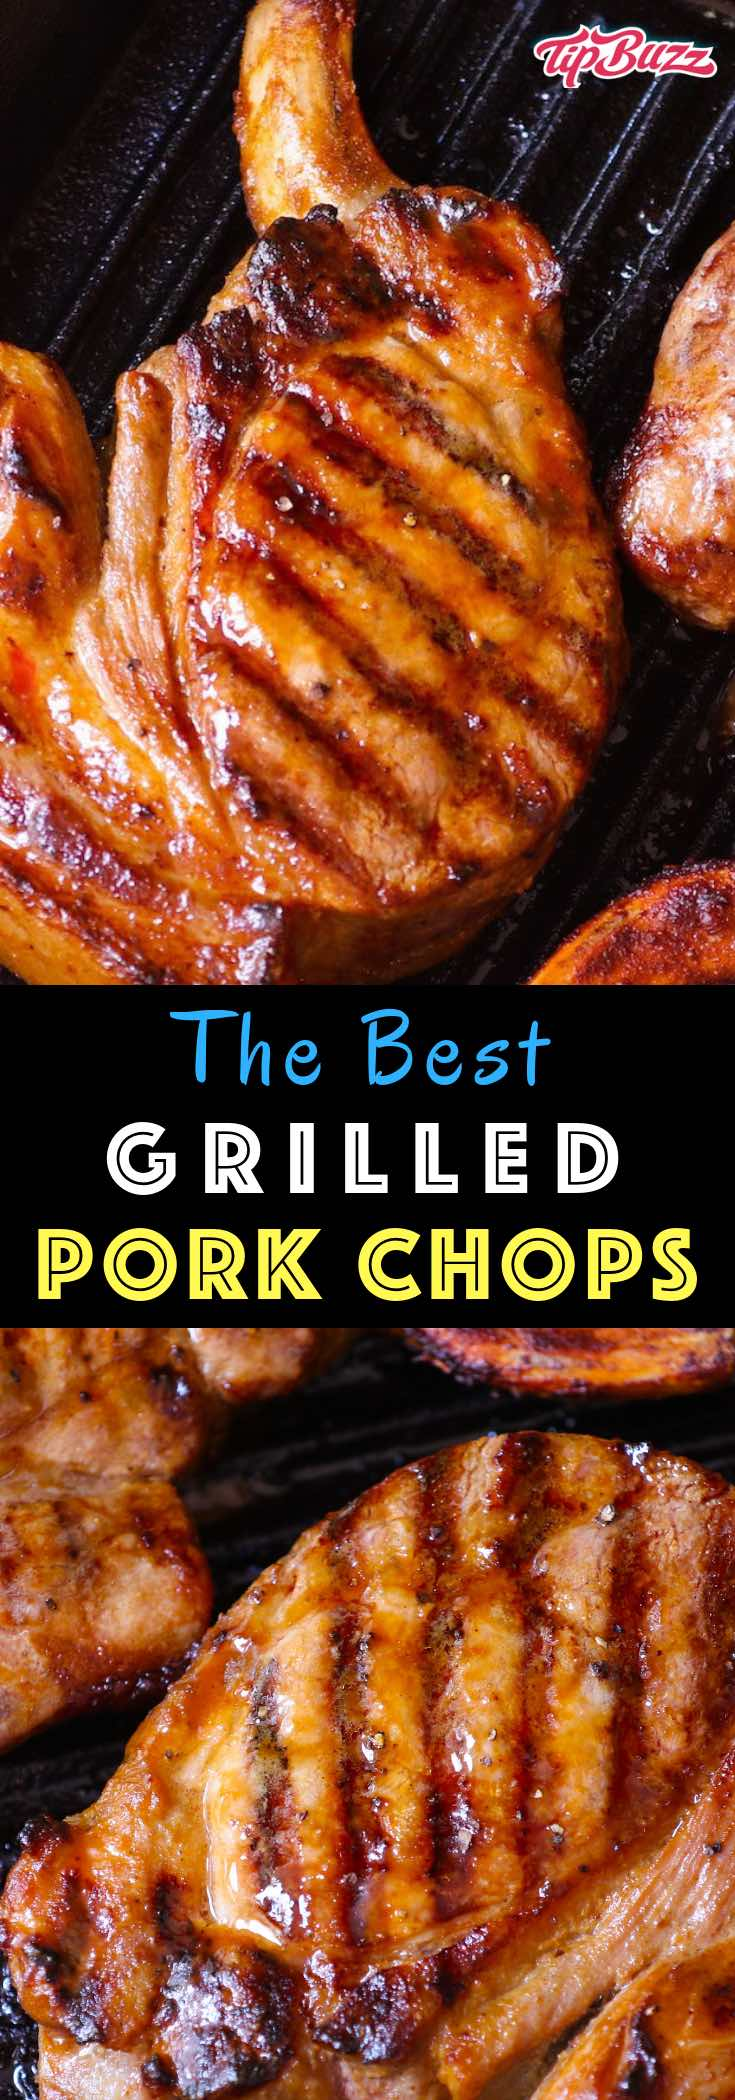 Grilled Pork Chopsare tender and moist marinated pork chops grilled to golden perfection. Cook on a hot barbecue for a fast meal ready in under 30 minutes.